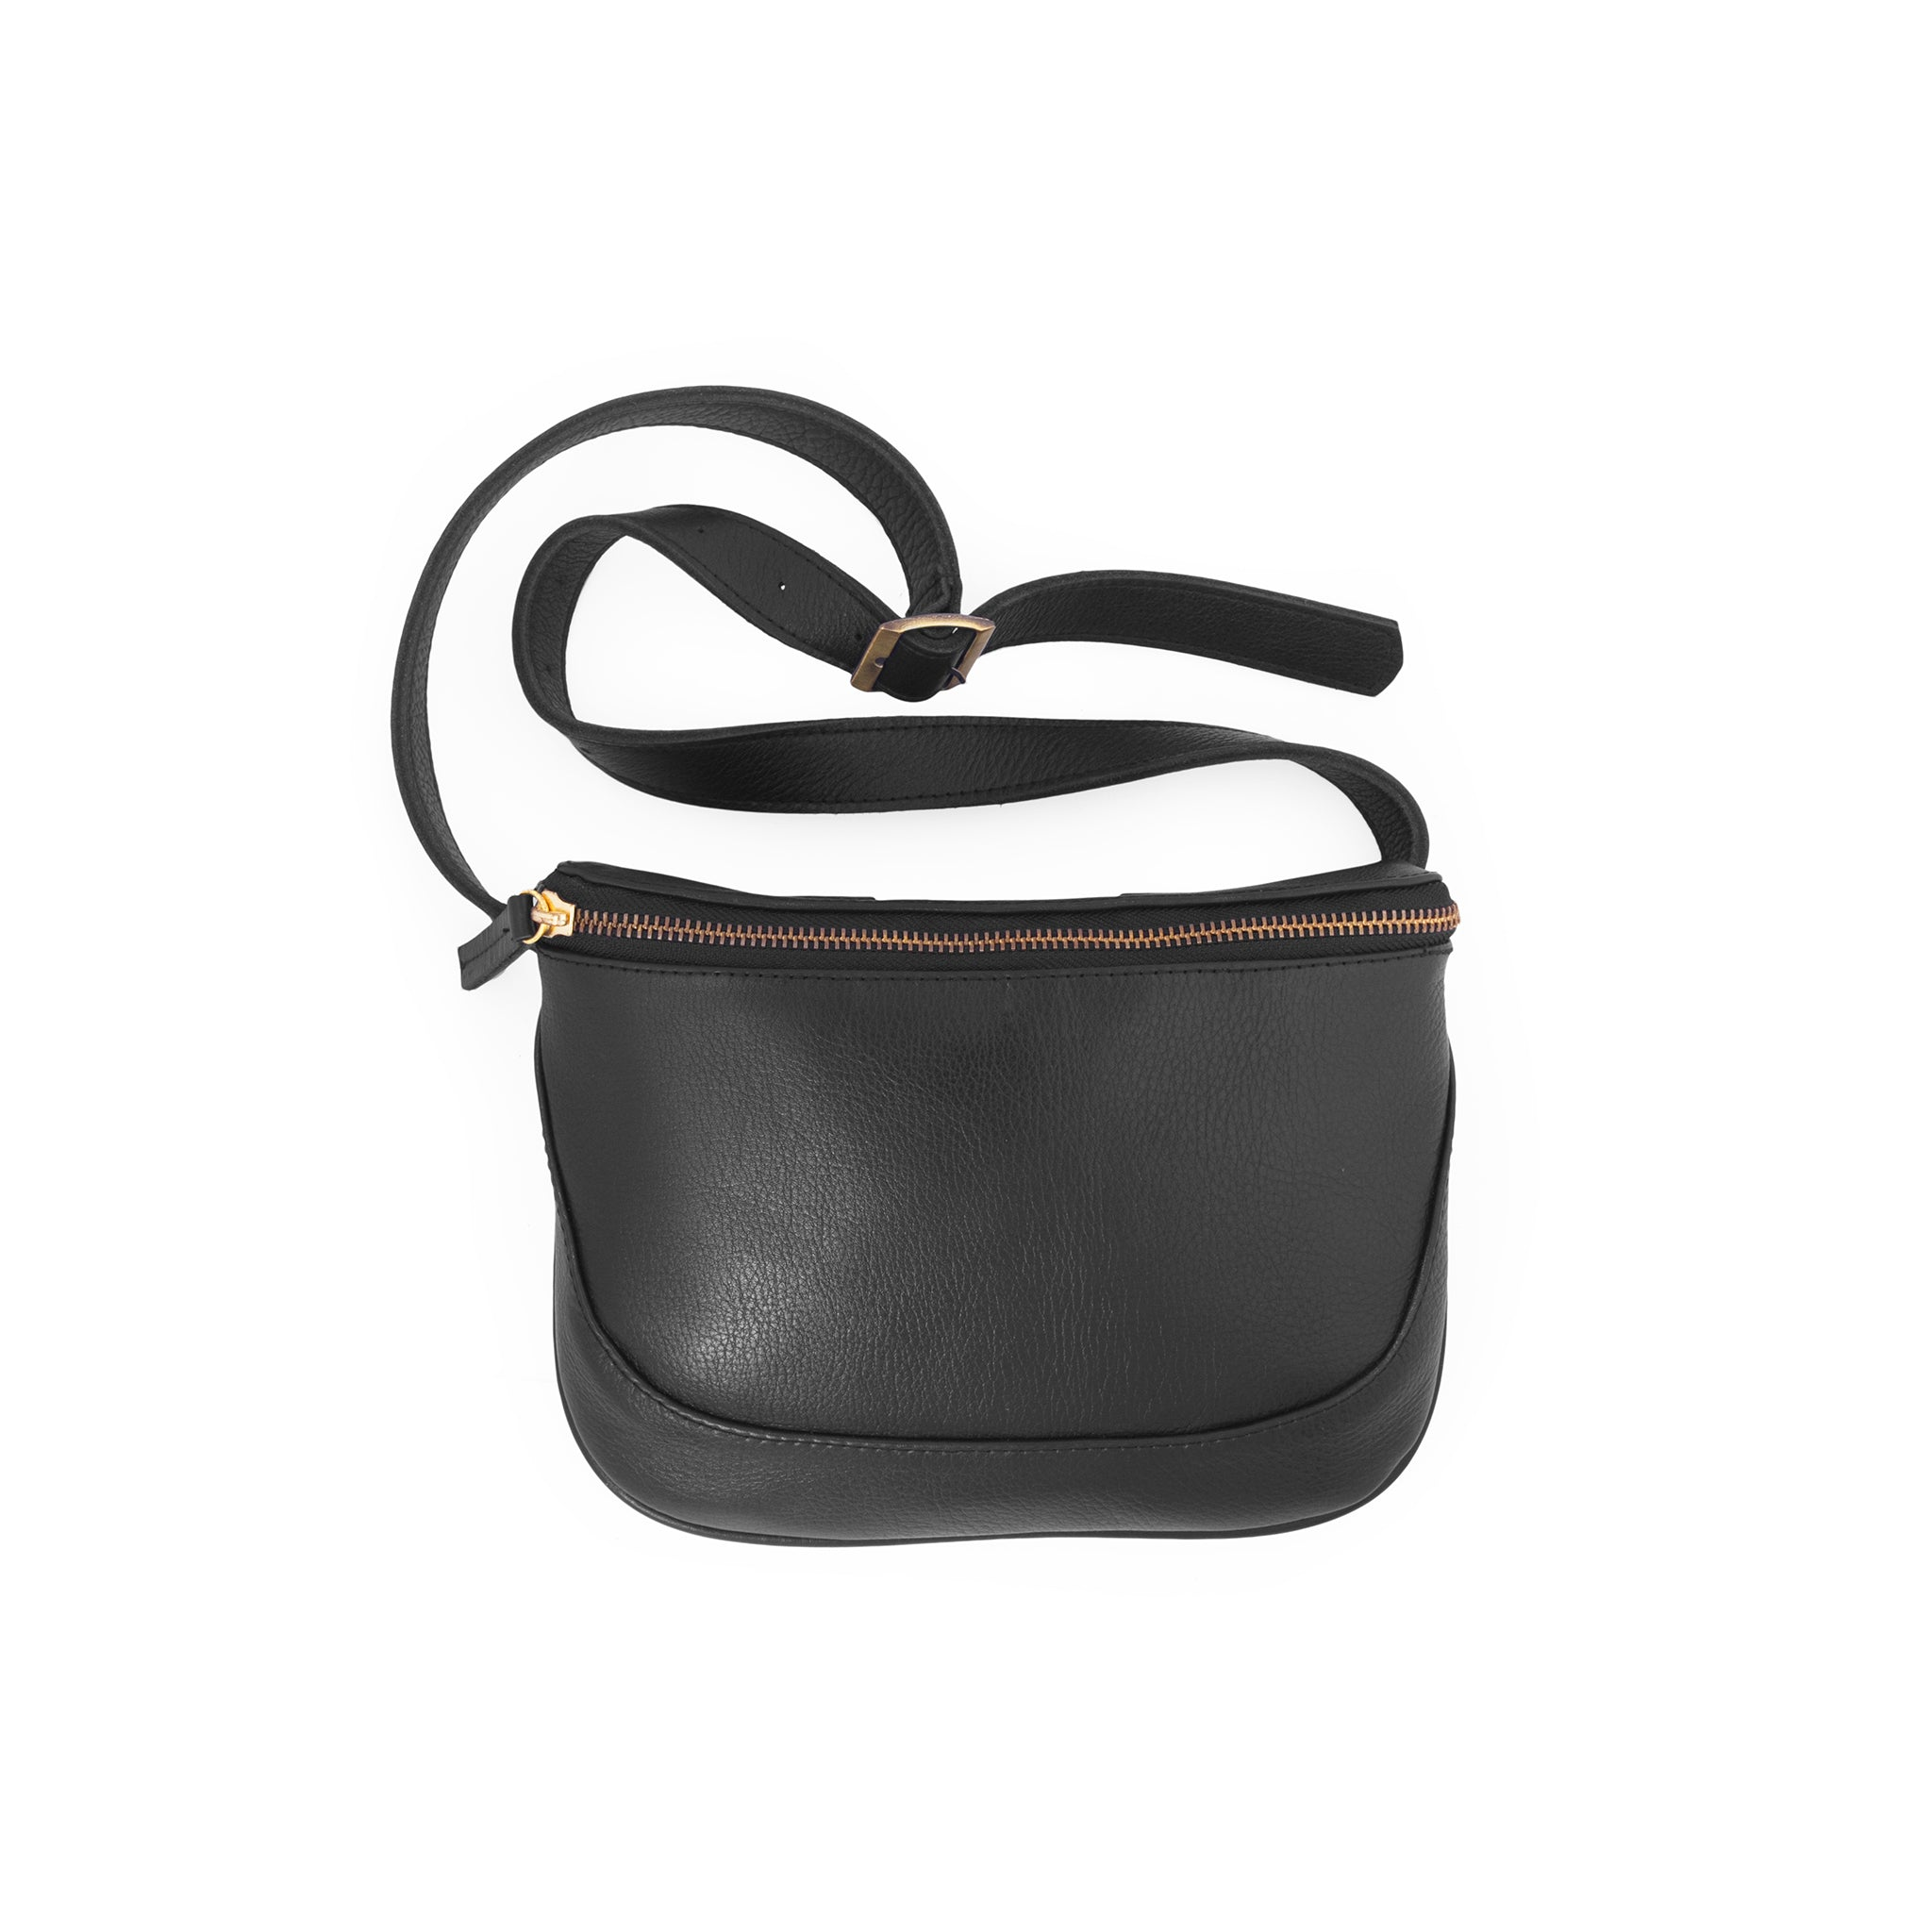 Soho-Belt Bag Leather Fanny Pack-Black